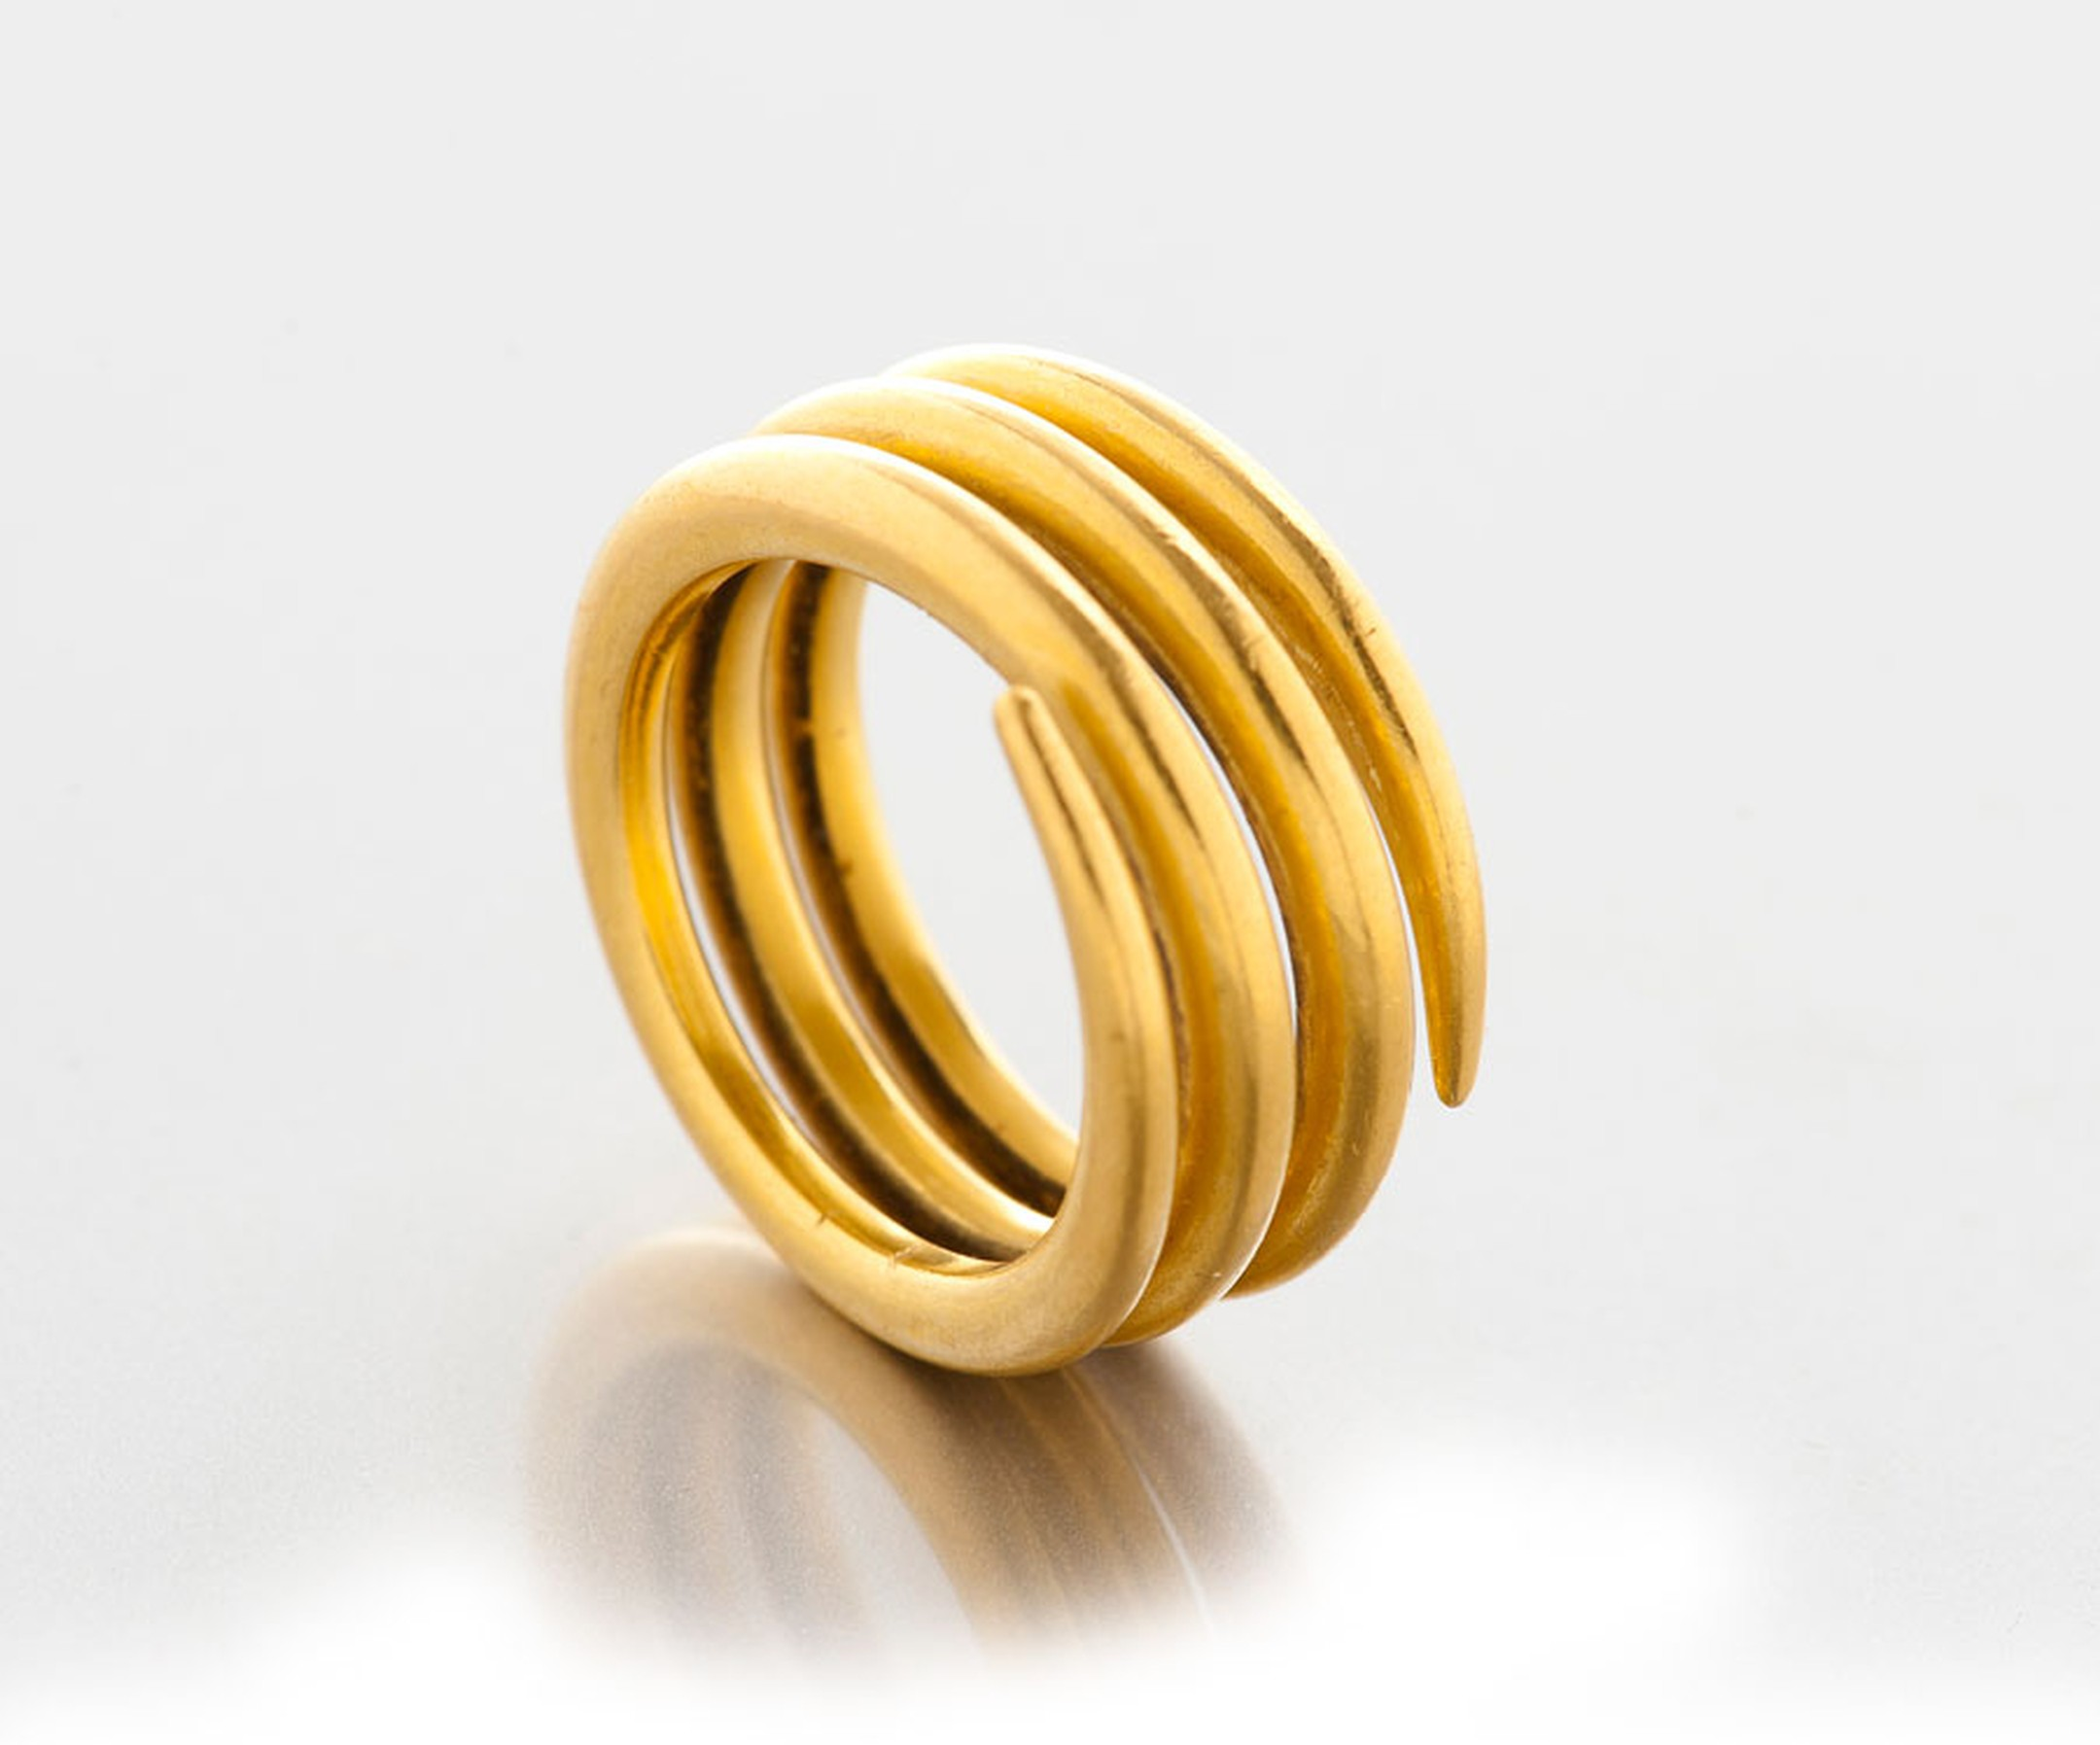 Lisa-Black-Coiled-Gold-Ring.jpg